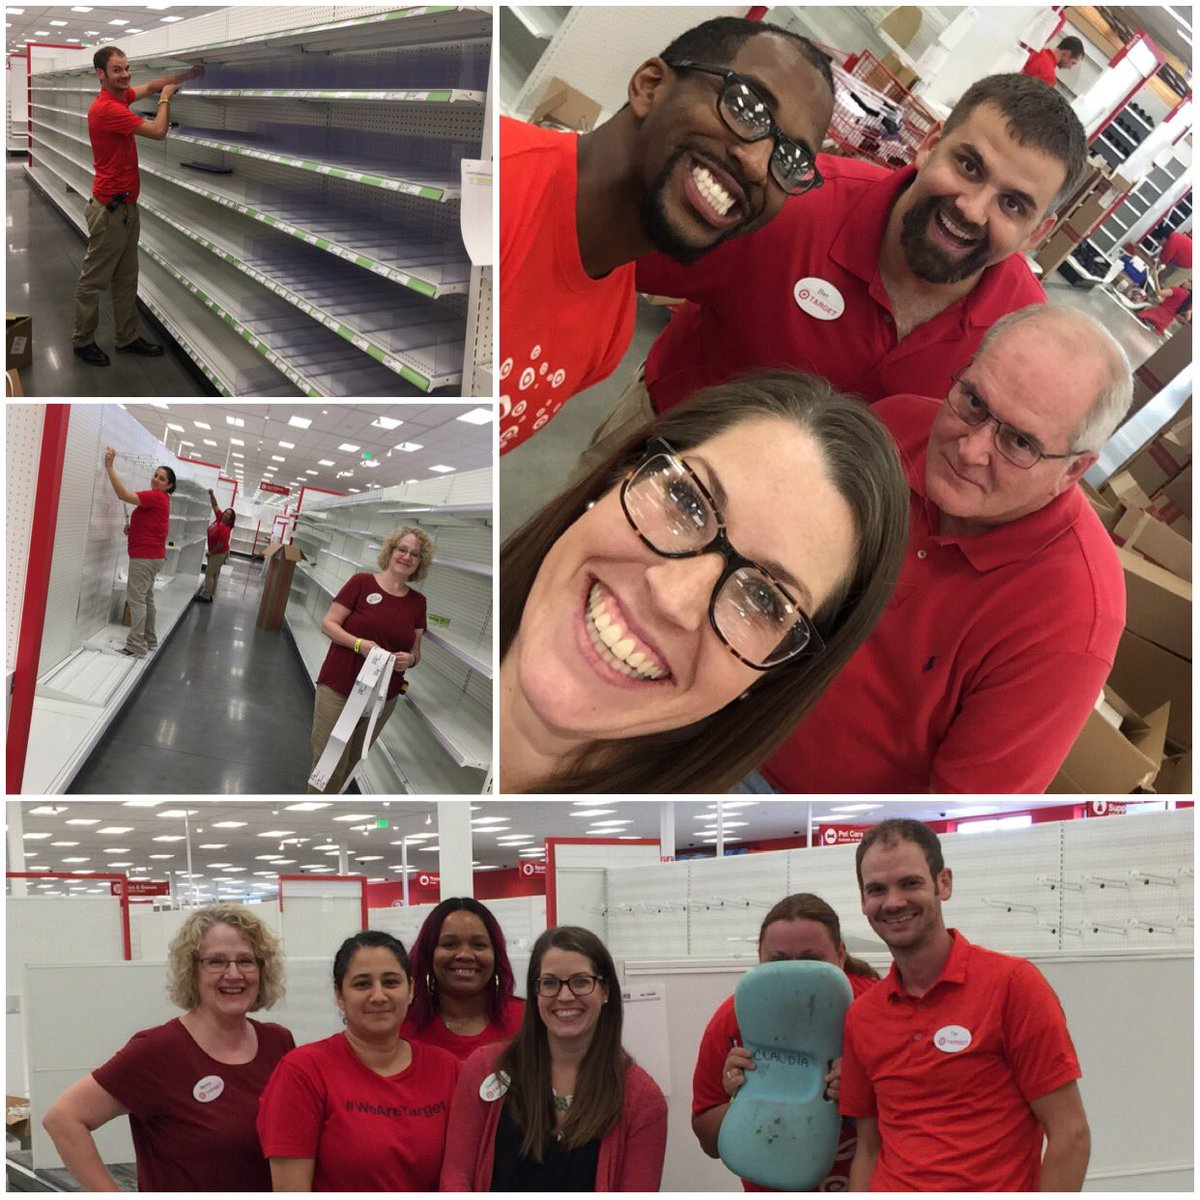 My team and I had fun out at #T2868thegrand #planorama! #oneteamonedream #setallthethings #nextgen #G392 @johnp_sheehan @LReynolds711<br>http://pic.twitter.com/0IzN3jFMXe